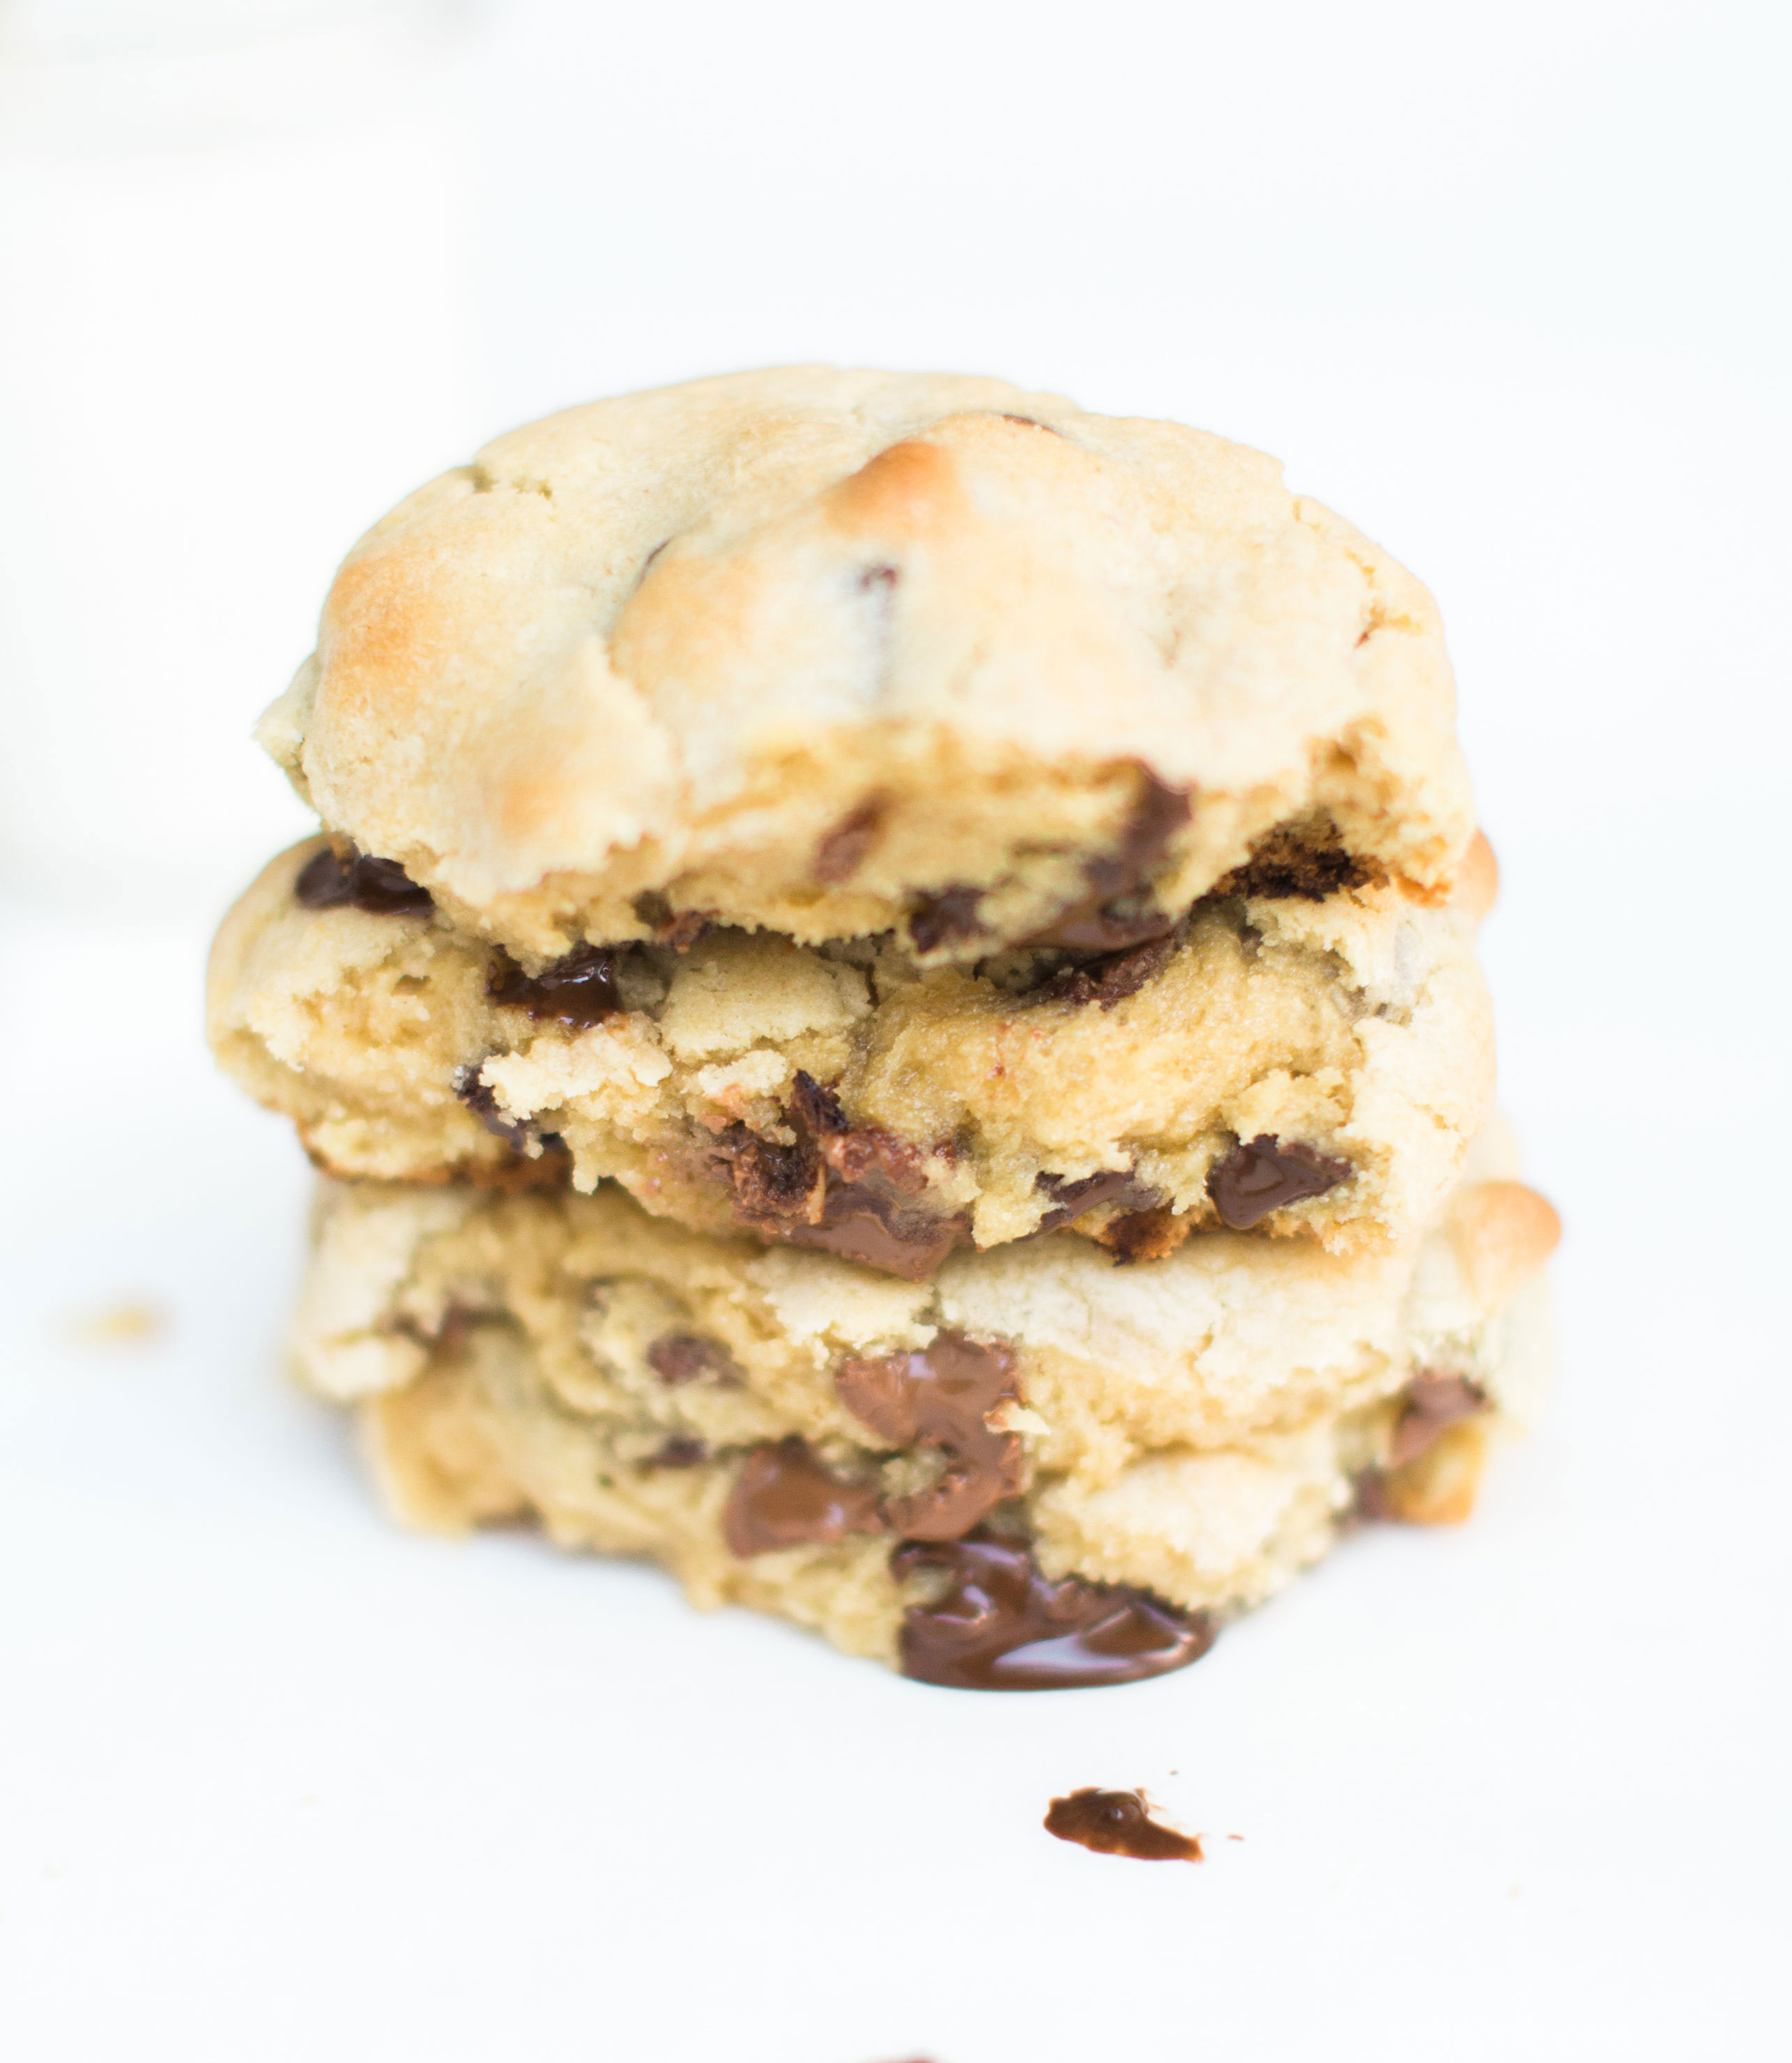 Here it is!The Famous Levain Bakery Chocolate Chip Cookie Recipe that all of New York City is obsessed with; plus a few little tweaks that had our whole family totally crushing on these. You have got to try these super thick, gooey, and decadent #cookies. Click through for the #recipe. #levainbakery #levainbakerychocolatechipcookies #levainbakerycookies #famouscookies | glitterinc.com | @glitterinc